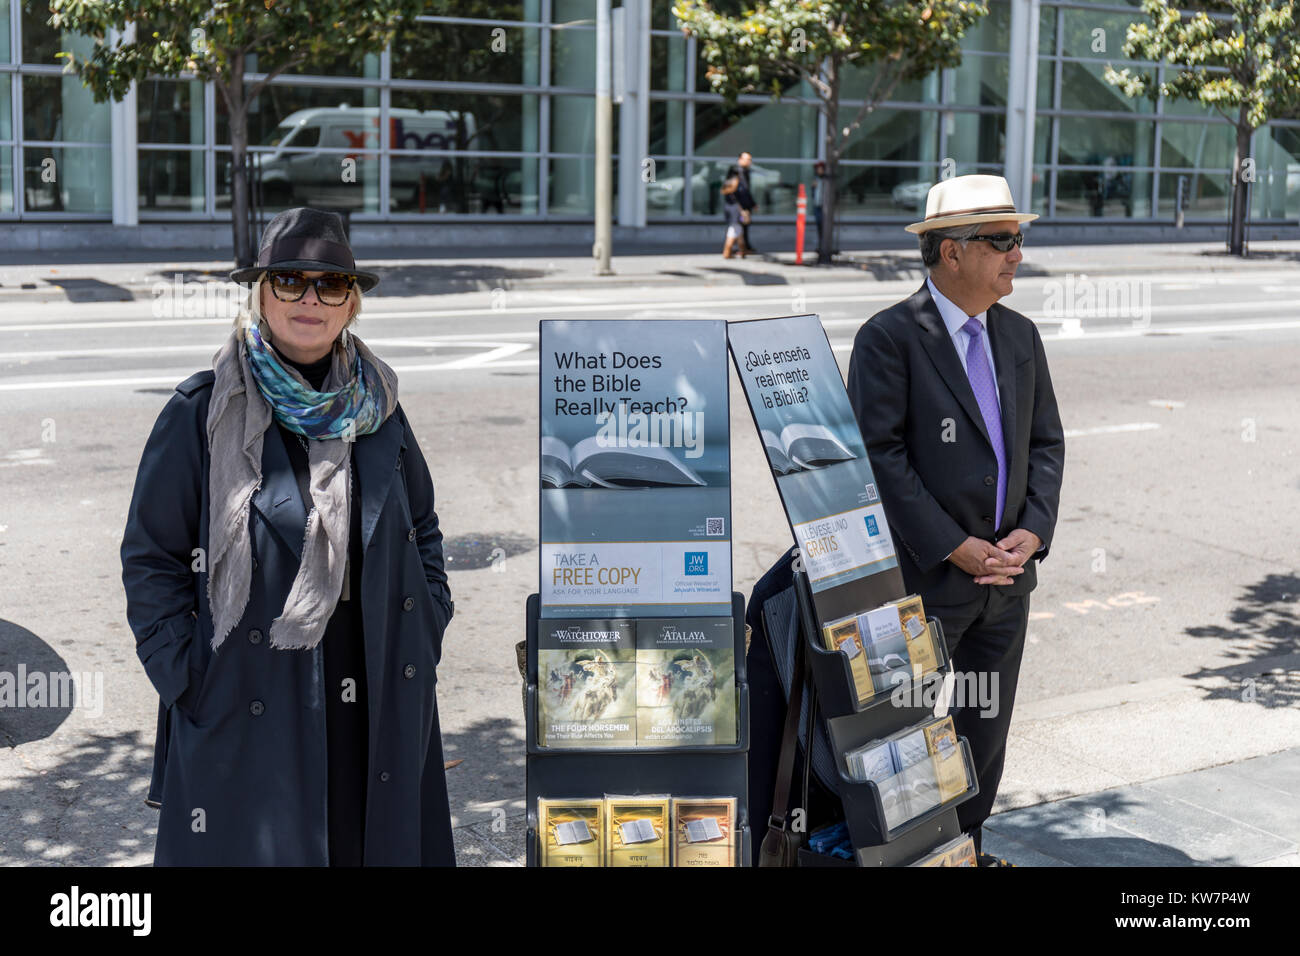 """What Does the Bible Really Teach?"", Jehovah's Witnesses, 4th Street, San Francisco Stock Photo"